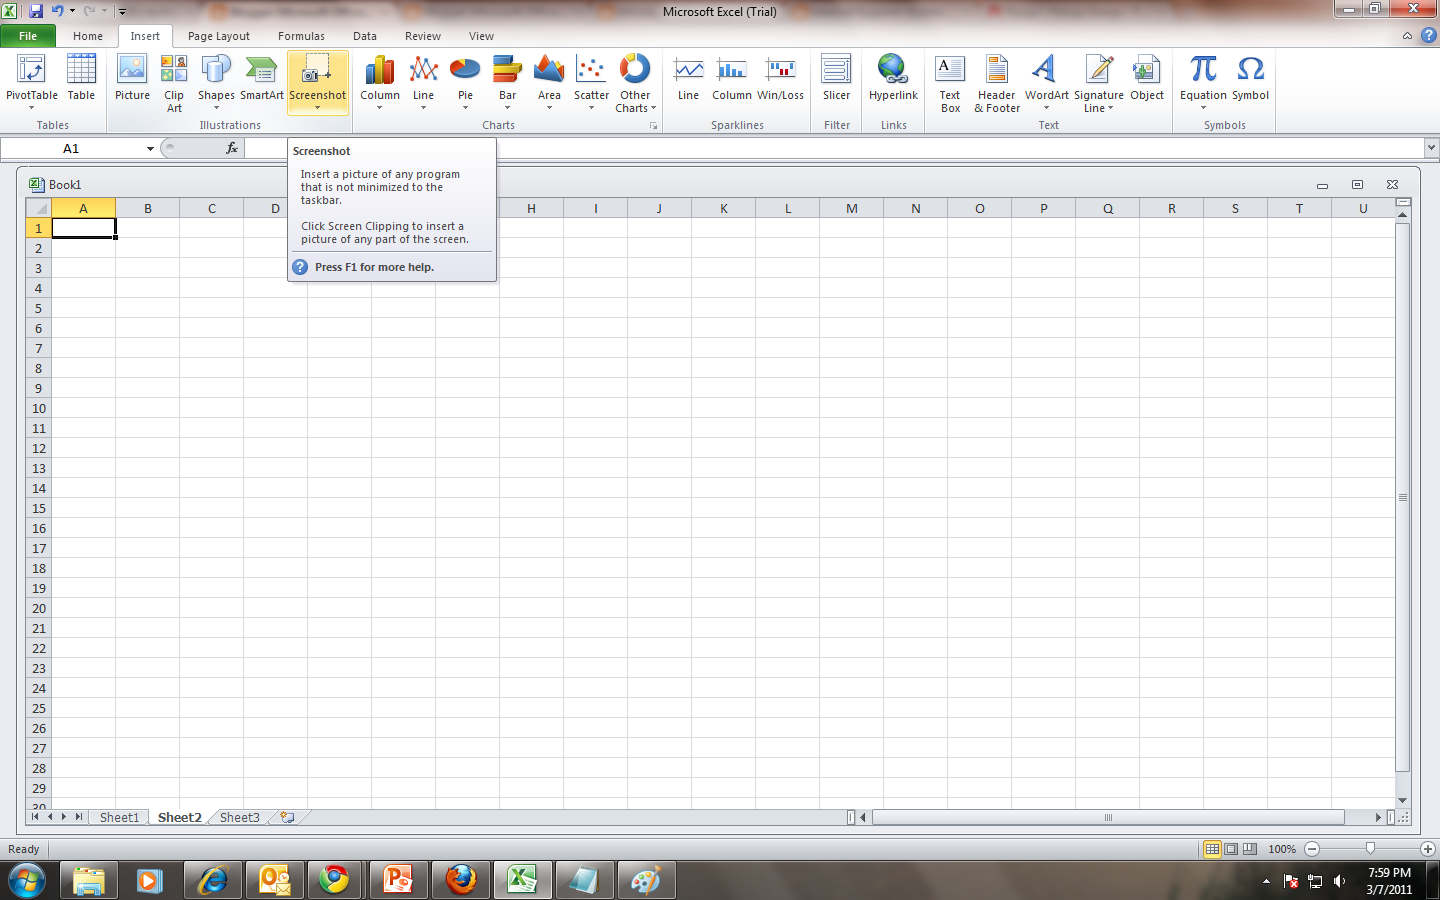 Download office 2010 professional plus 64 bit Screenshot